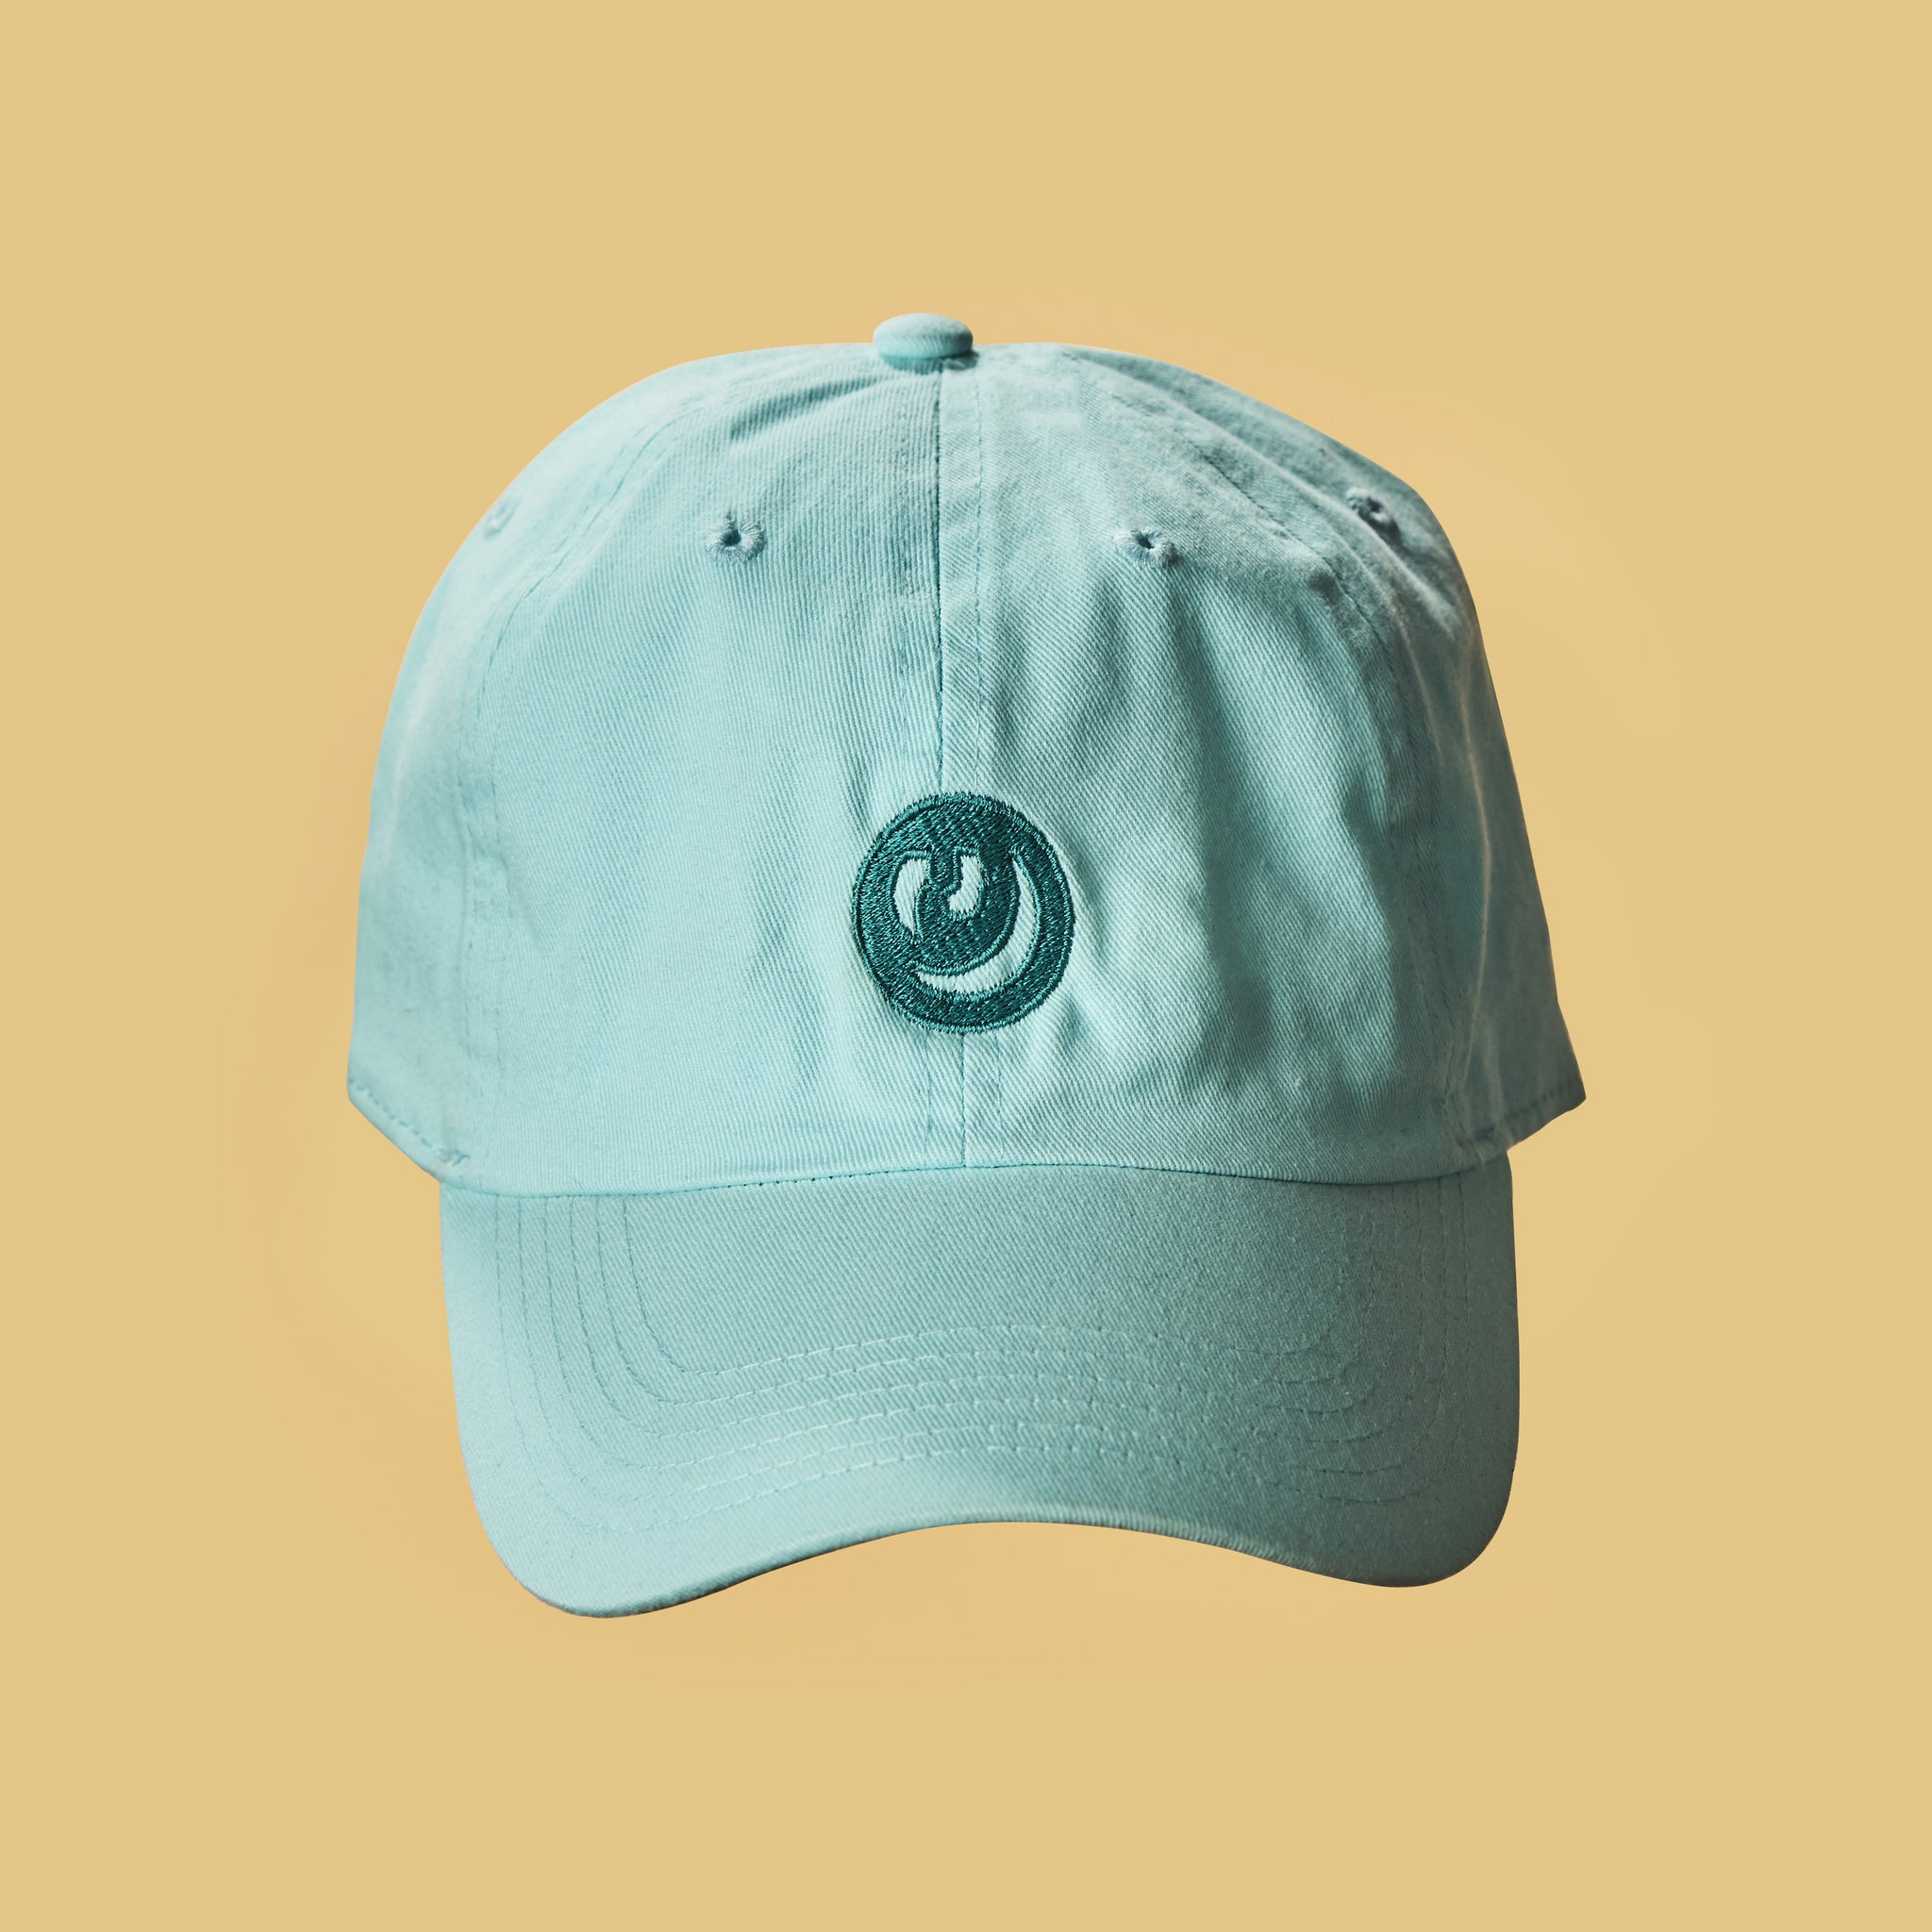 Sgnarly Hat - Mint